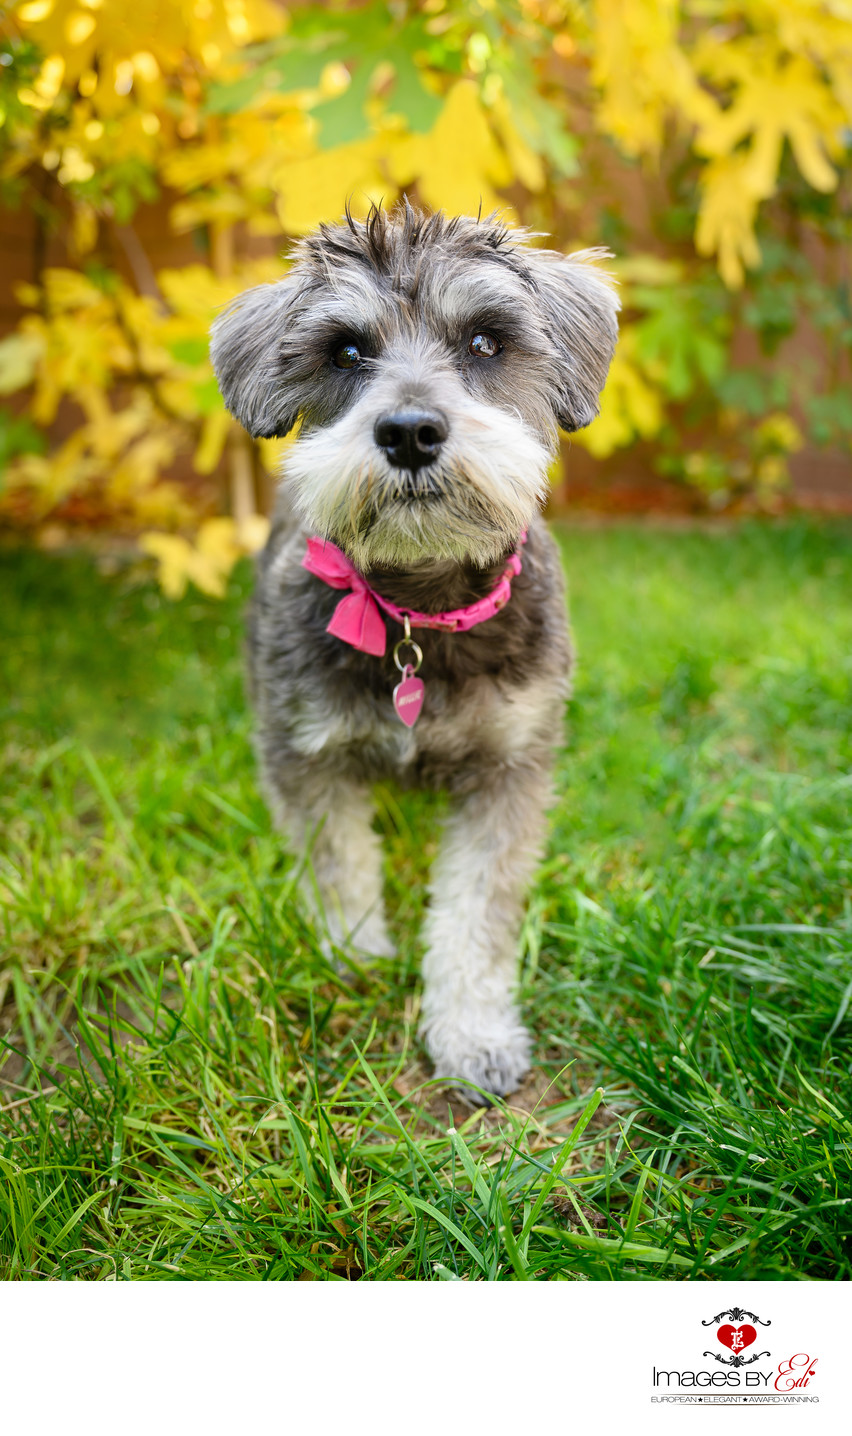 Las Vegas Fall Pet Photo With Yellow Leaves | Best Las Vegas Pet Photographer | Schnauzer| Images By EDI